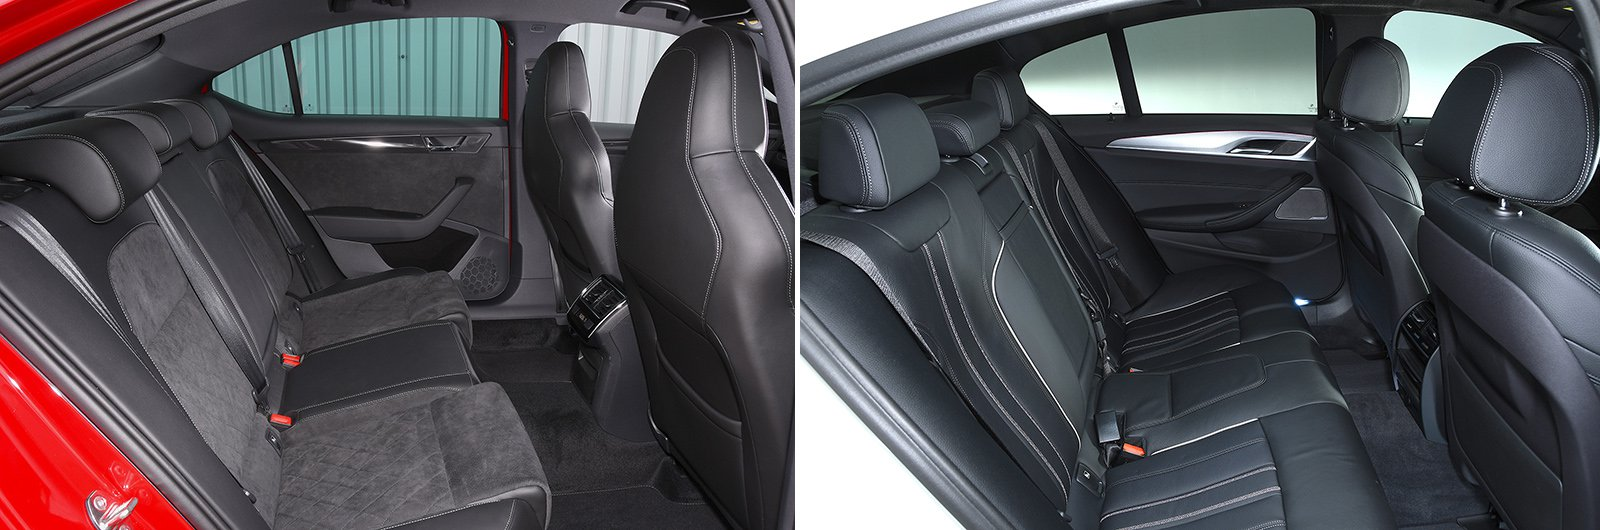 Superb 5 Series rear seats